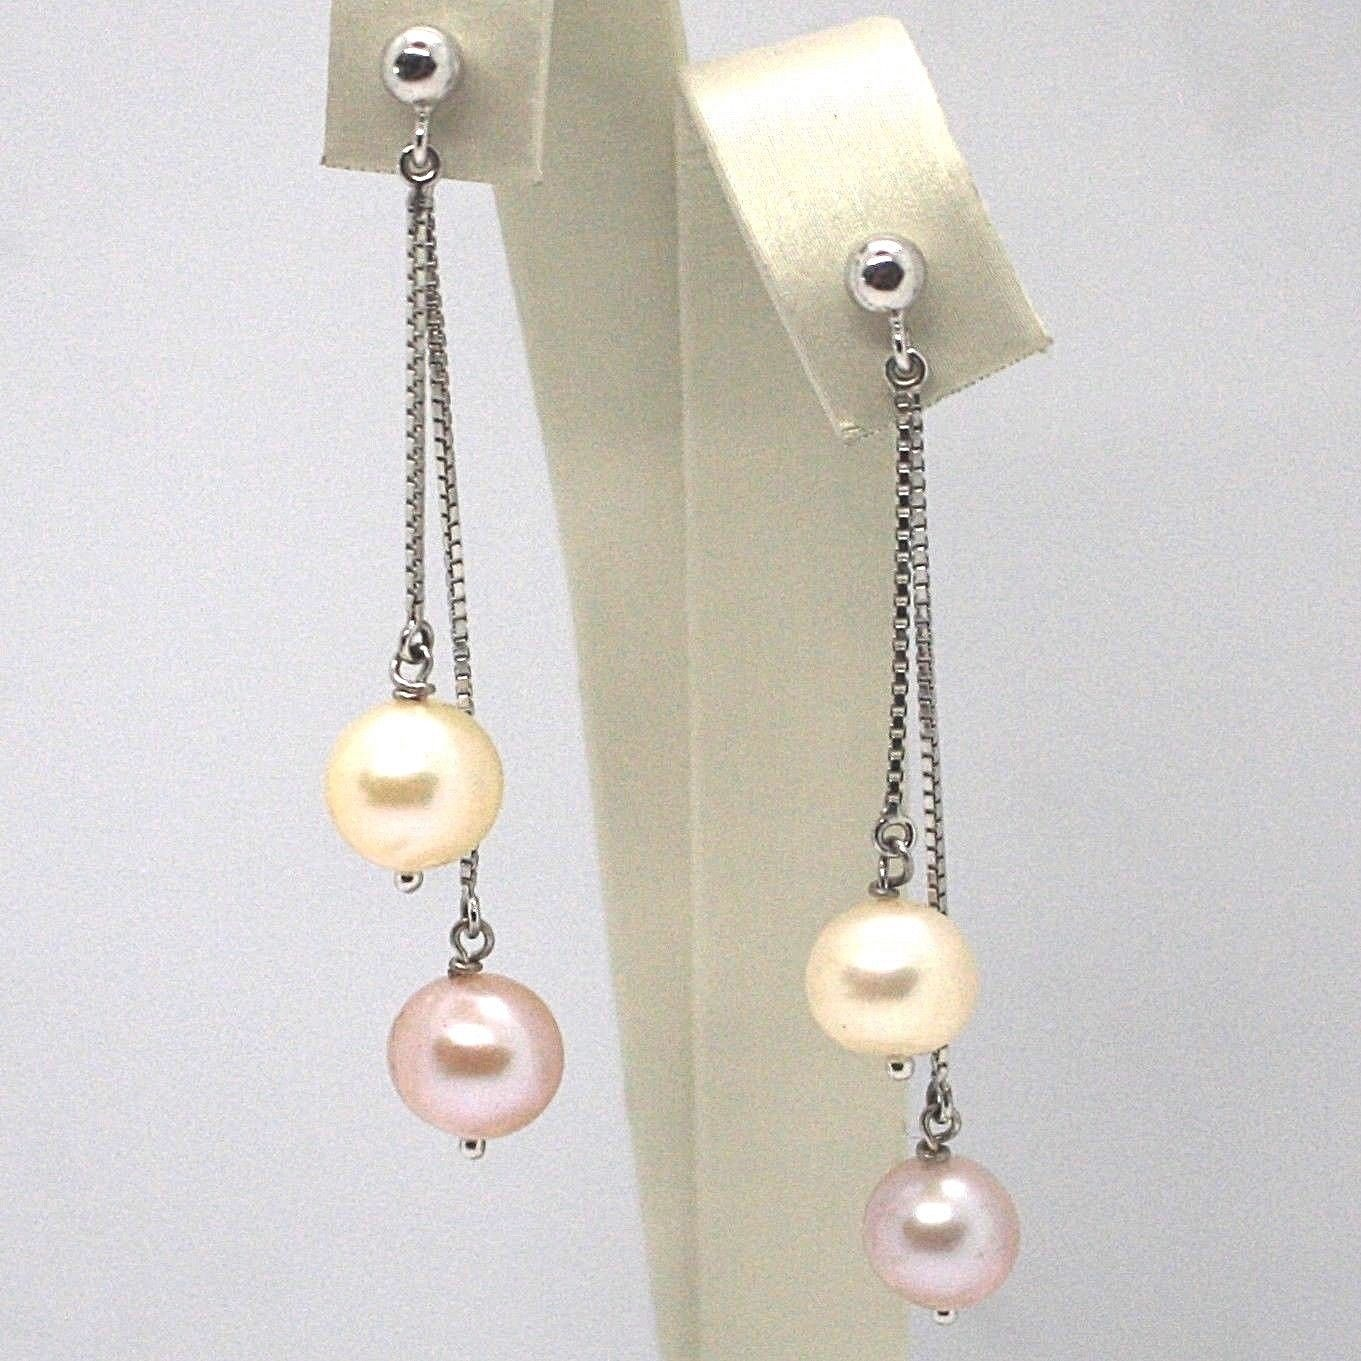 DROP EARRINGS WHITE GOLD 18K, DOUBLE CHAIN VENETIAN, PEARL WHITE AND PURPLE